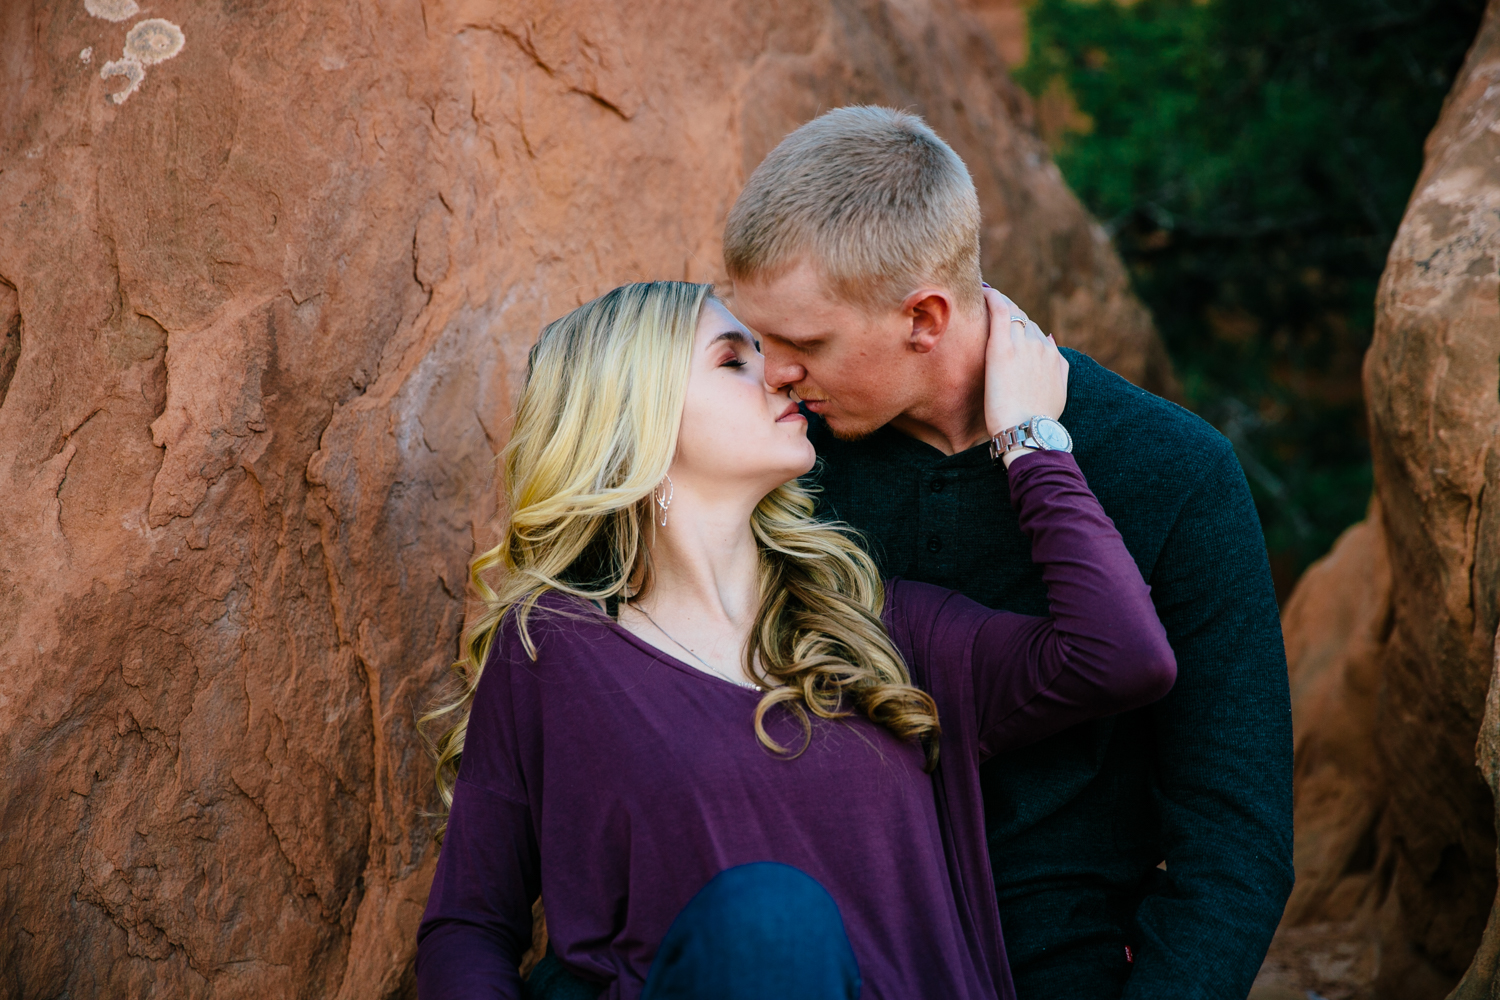 grand-junction-colorado-monument-wedding-photographer-engagements-13.jpg